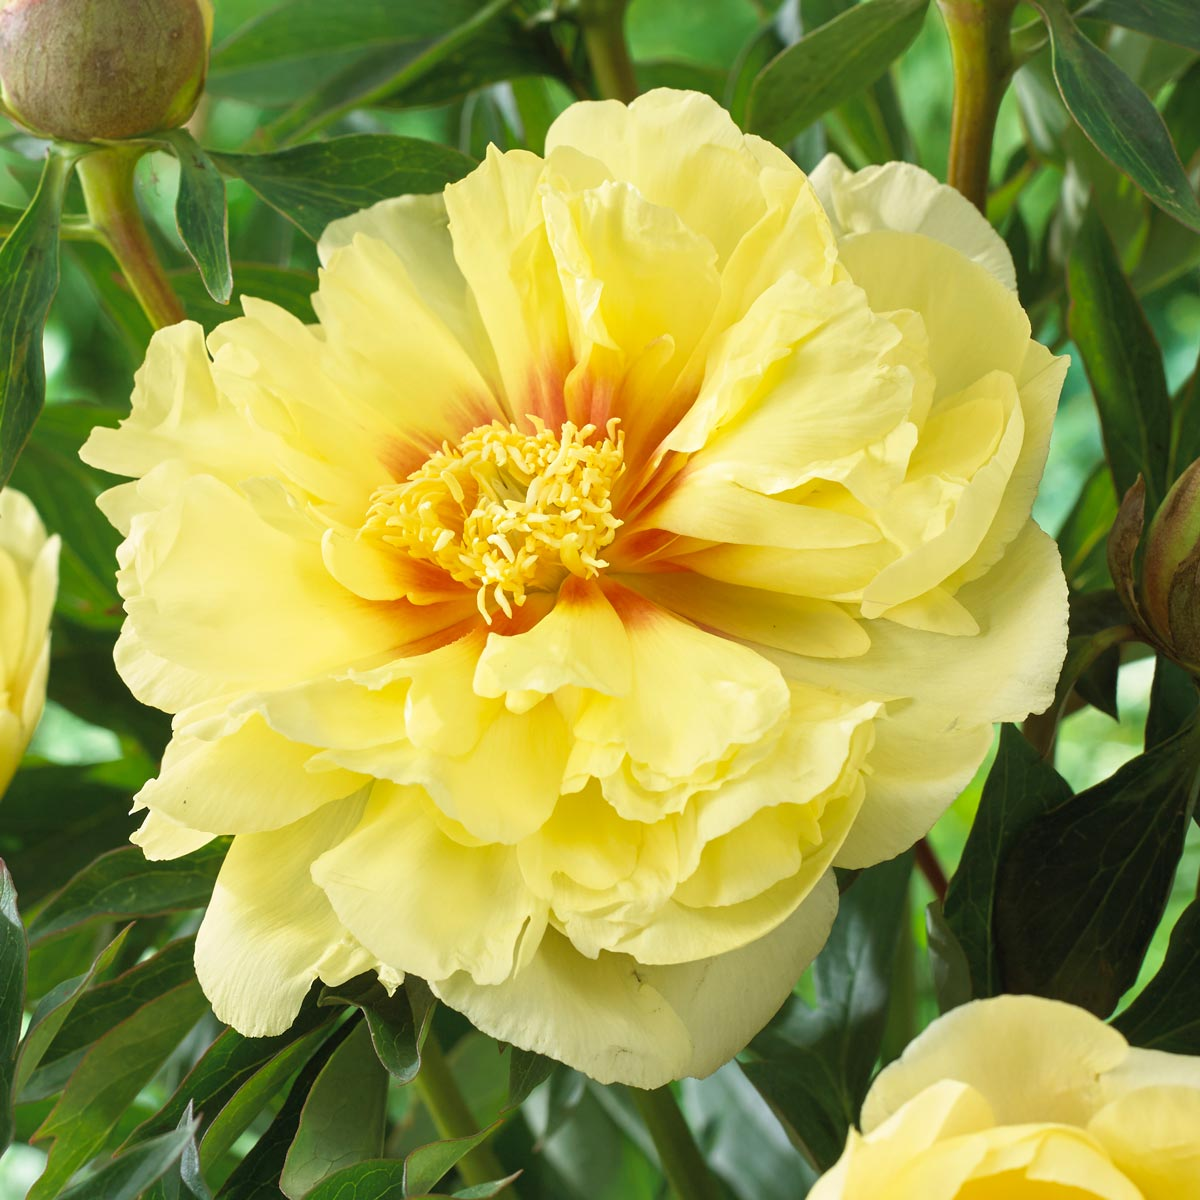 Bartzella-the-Yellow-Peony—Longfield-Gardens